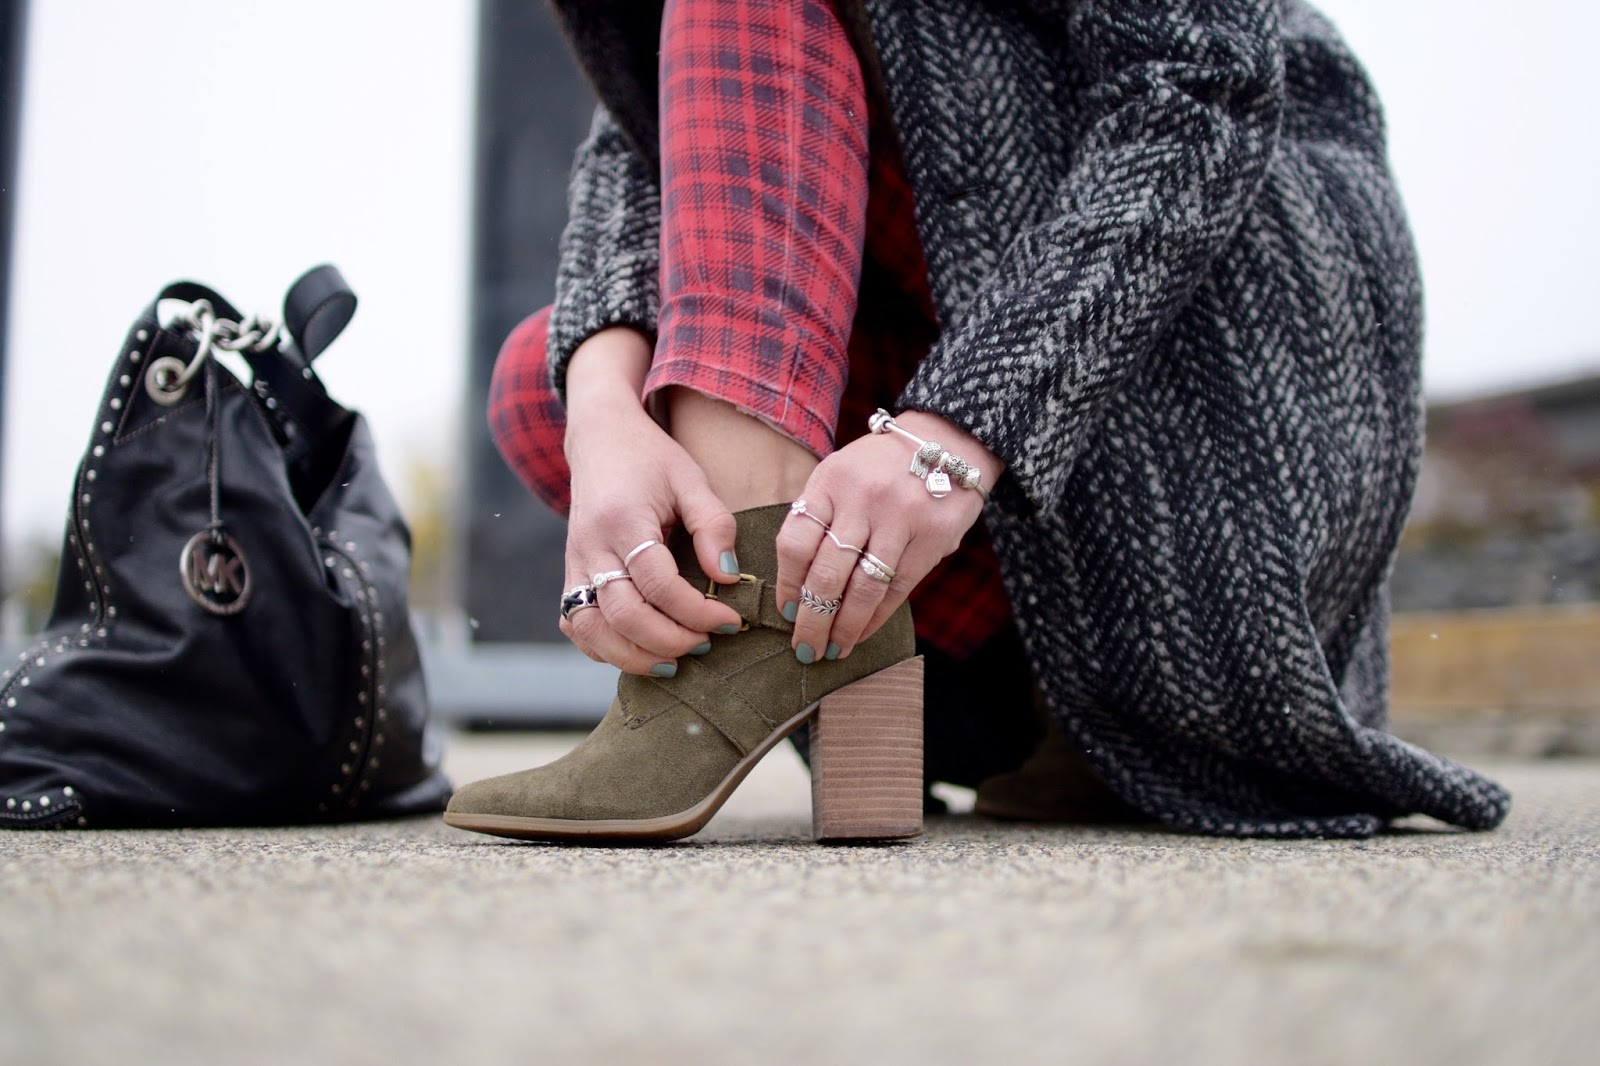 Monika Faulkner outfit inspiration - fur-collared coat, red plaid skinny jeans, olive ankle boots, MK bag